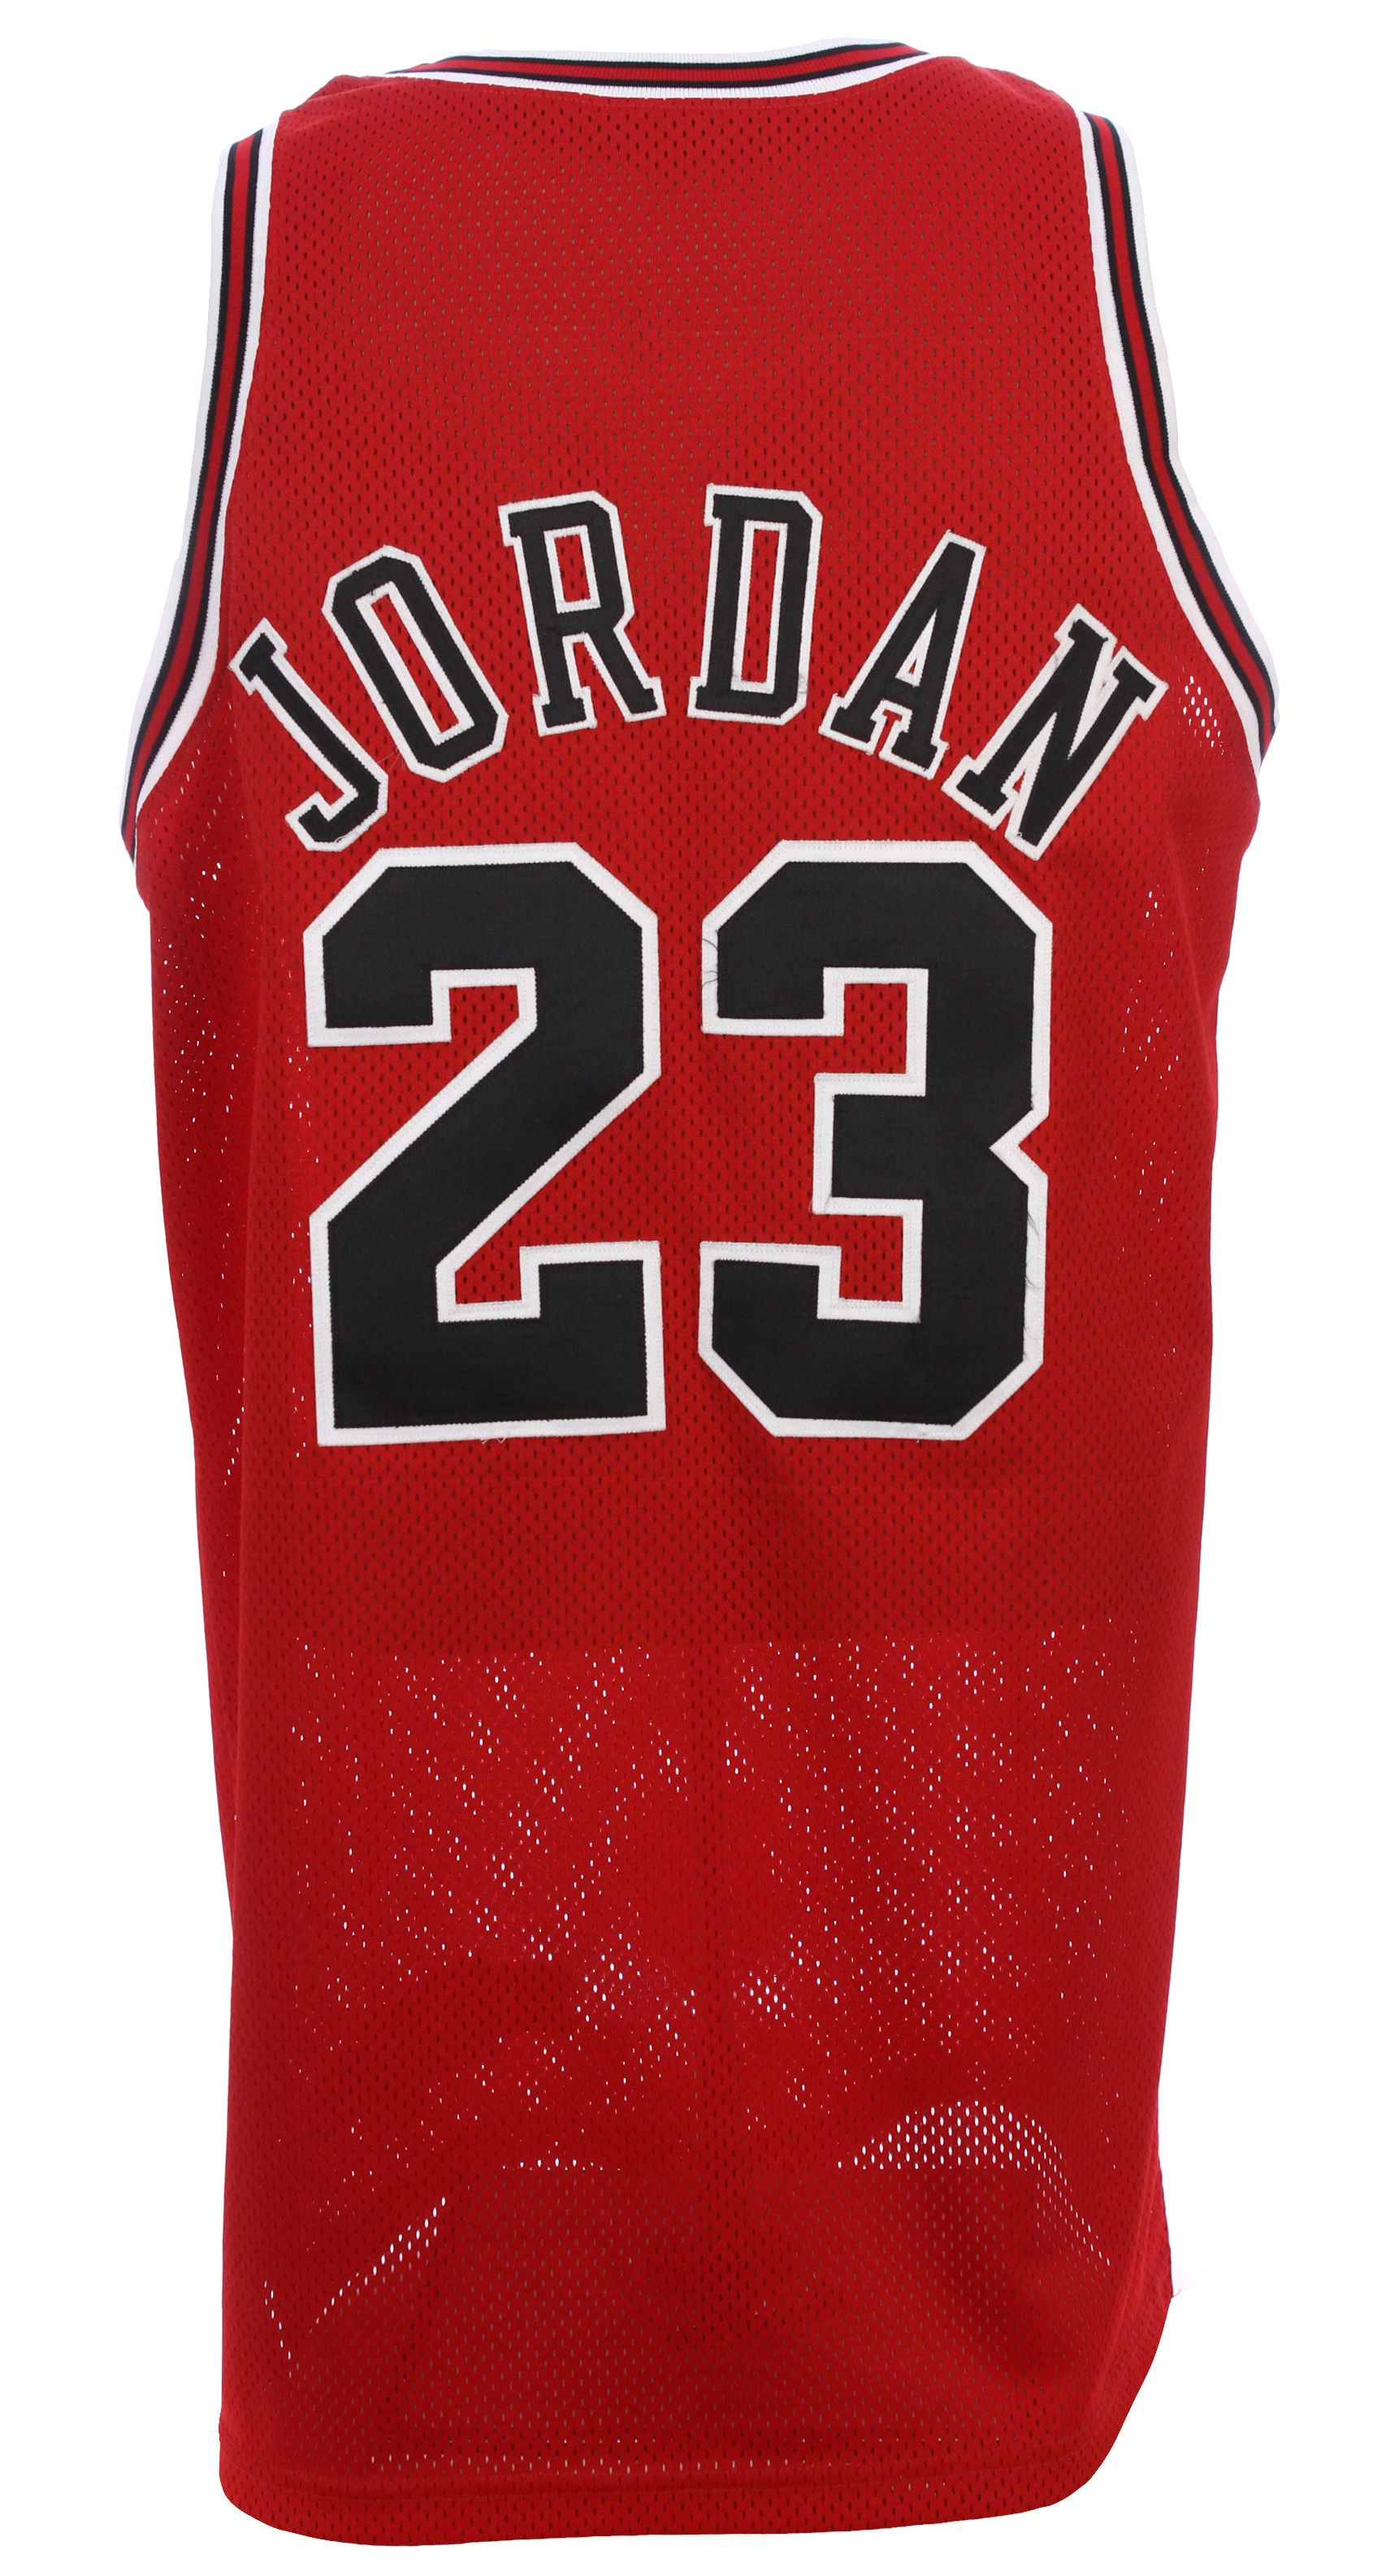 d2adad2ce1f 1997-98 Michael Jordan Chicago Bulls Signed Game Worn Road Uniform (MEARS  LOA . Touch to zoom. Previous